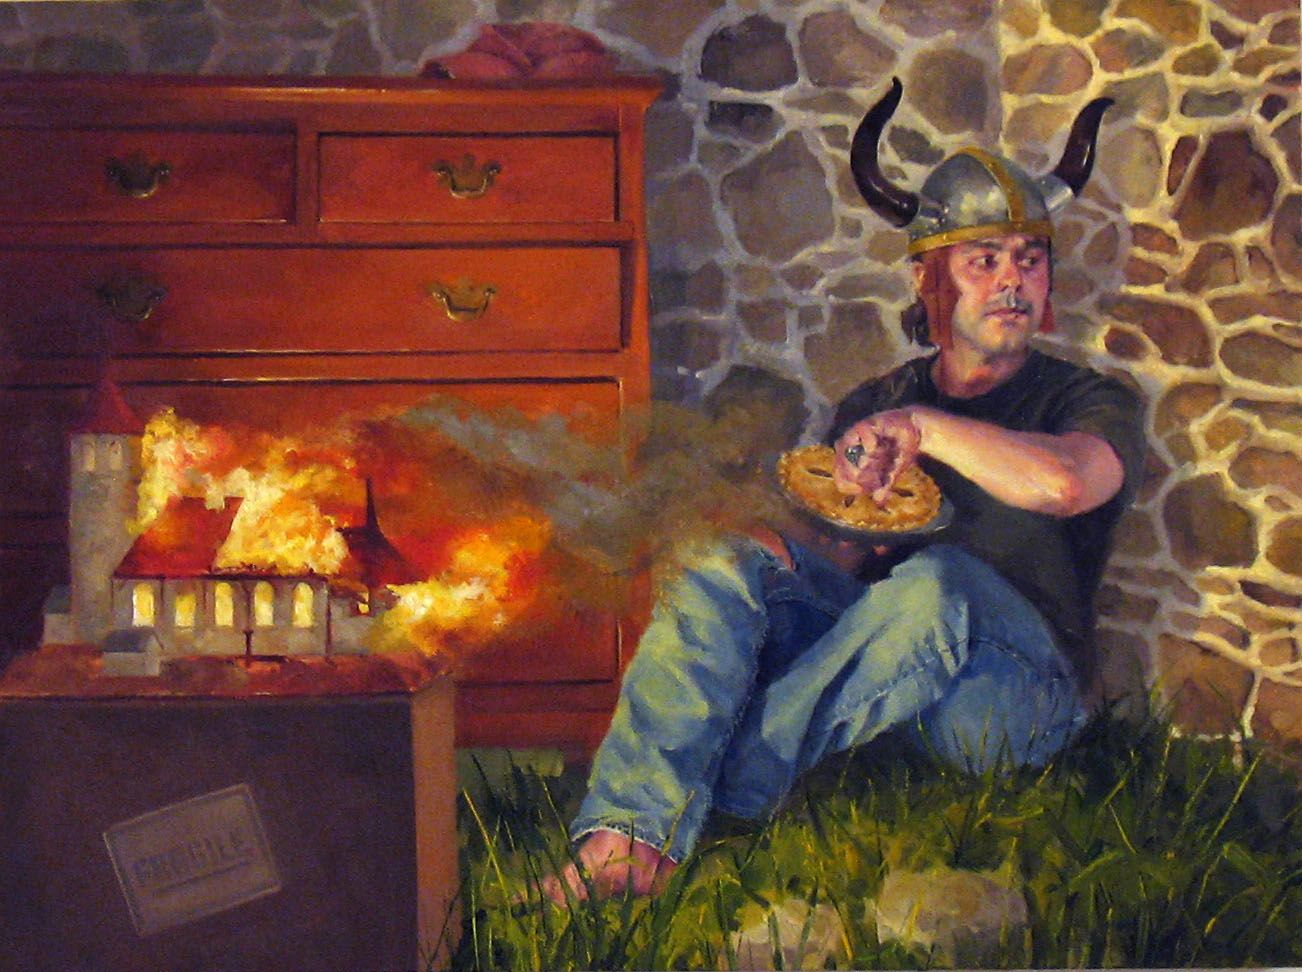 NATHANIEL ROGERS Jack Horner (The Last Viking) 2009, oil on panel, 6 x 8 inches.